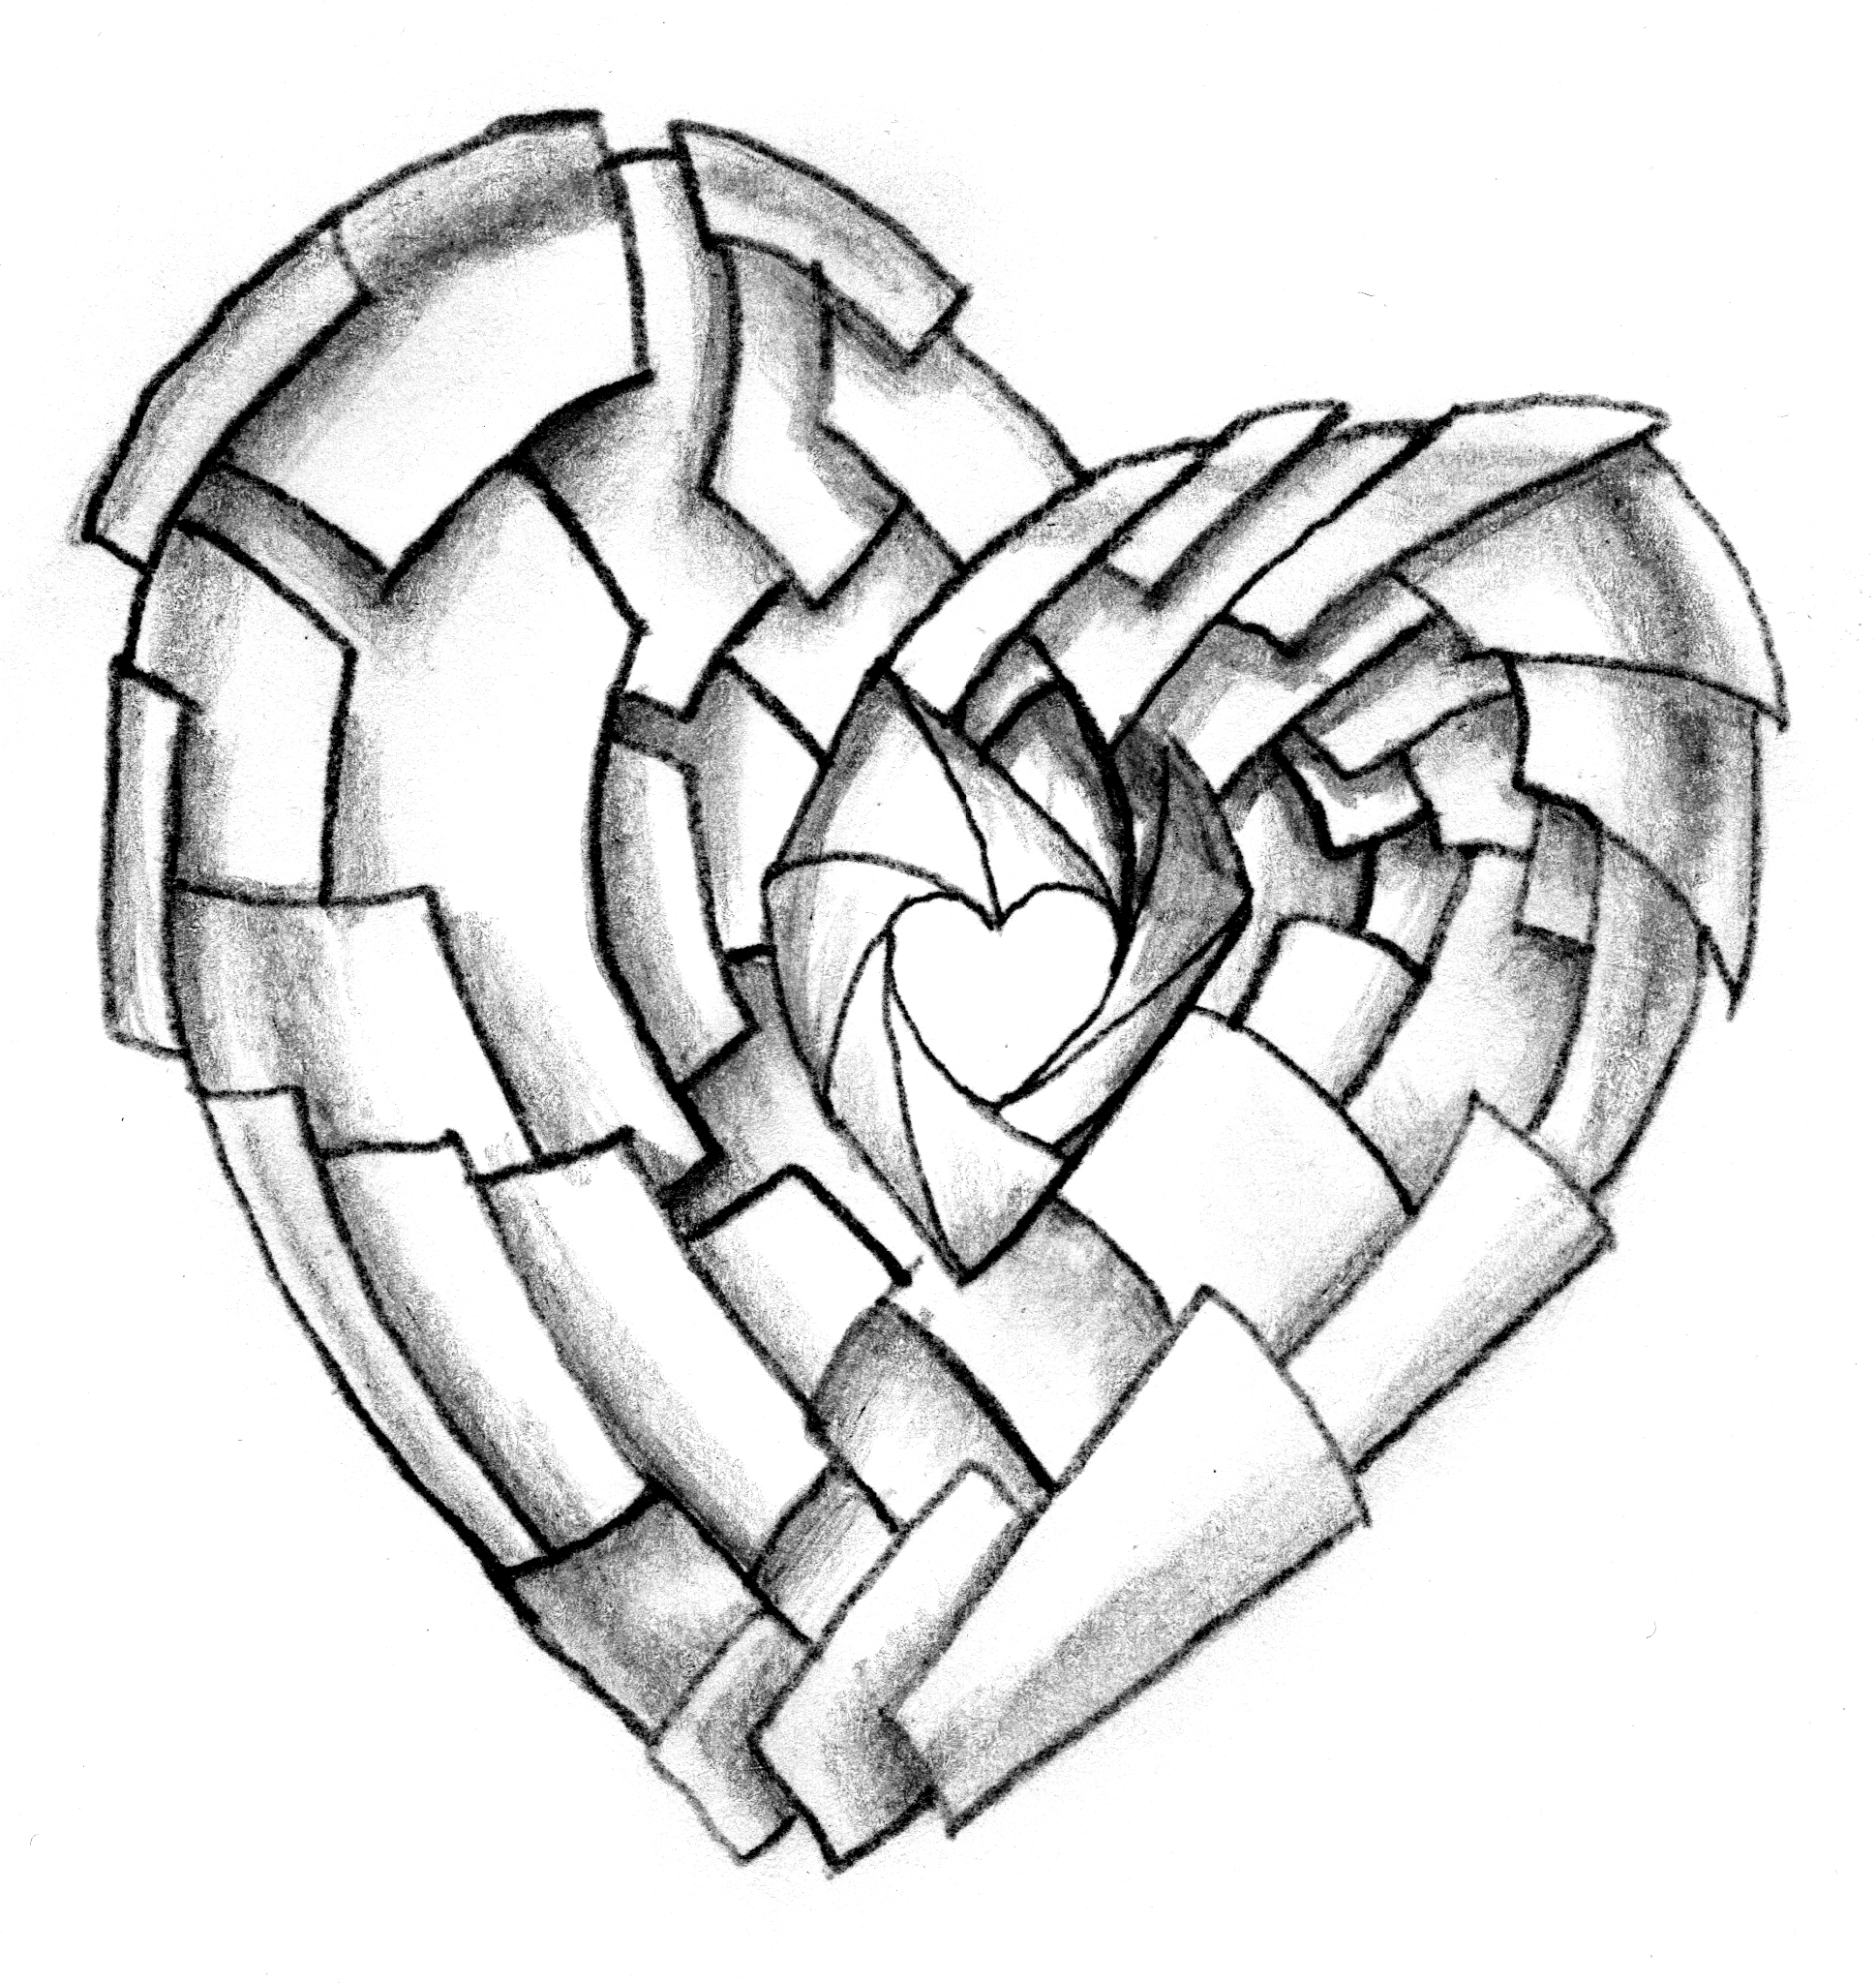 Heart Drawing In Pencil